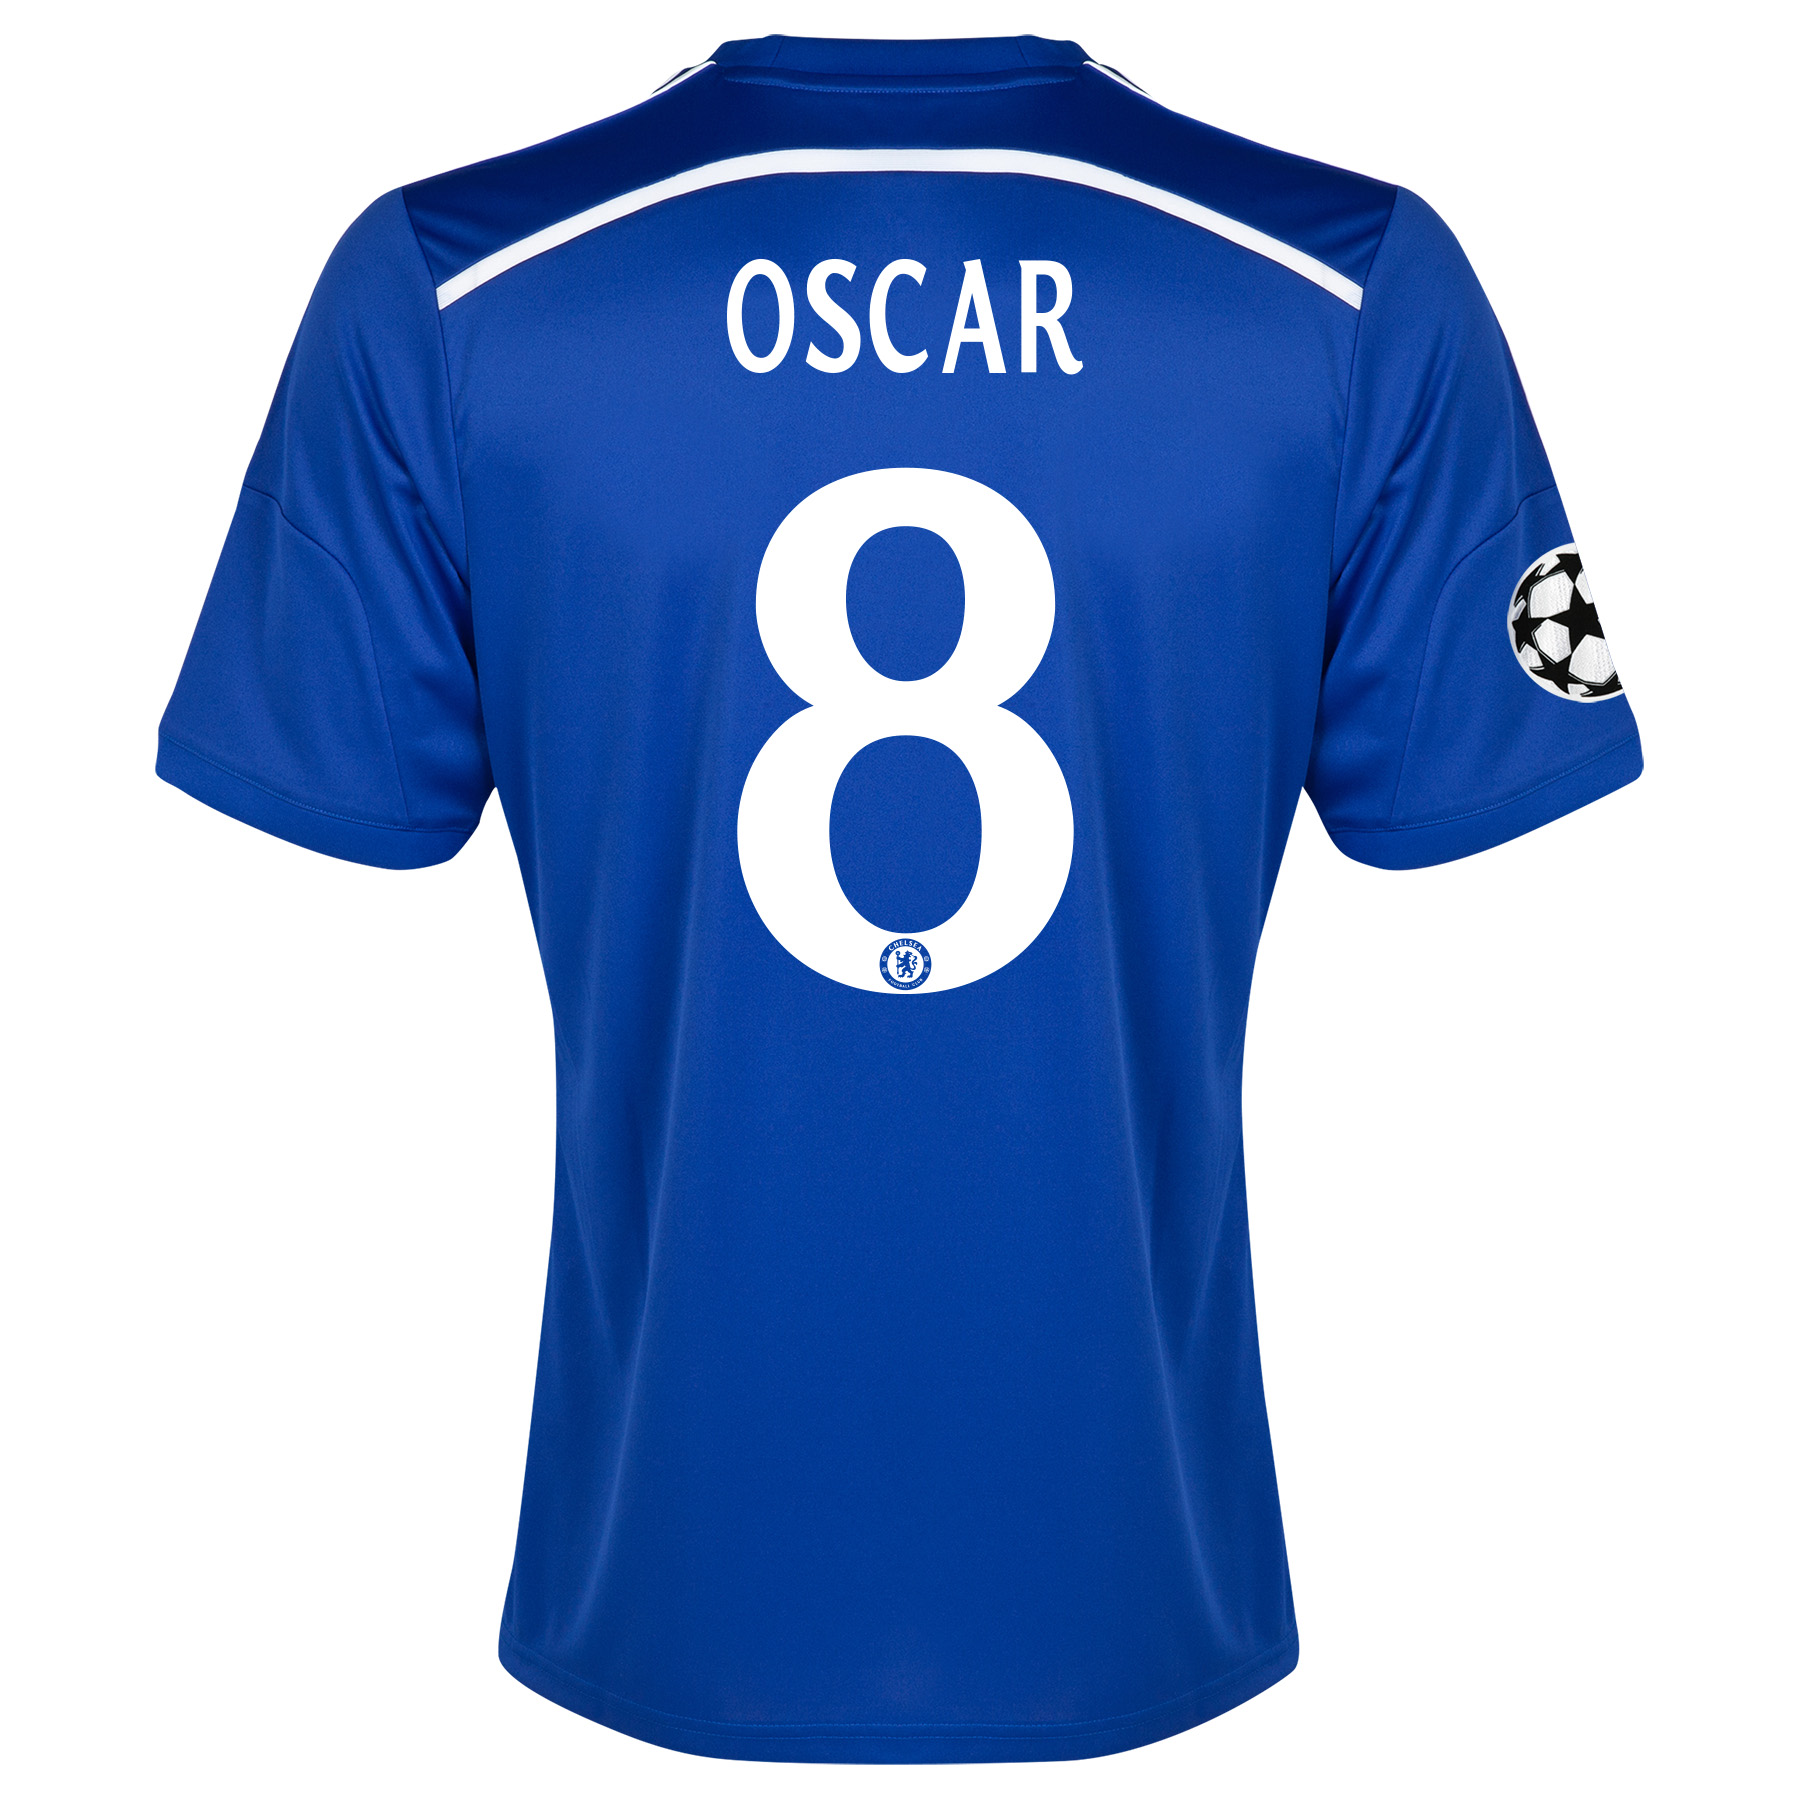 Chelsea UEFA Champions League Home Shirt 2014/15 Blue with Oscar 11 printing